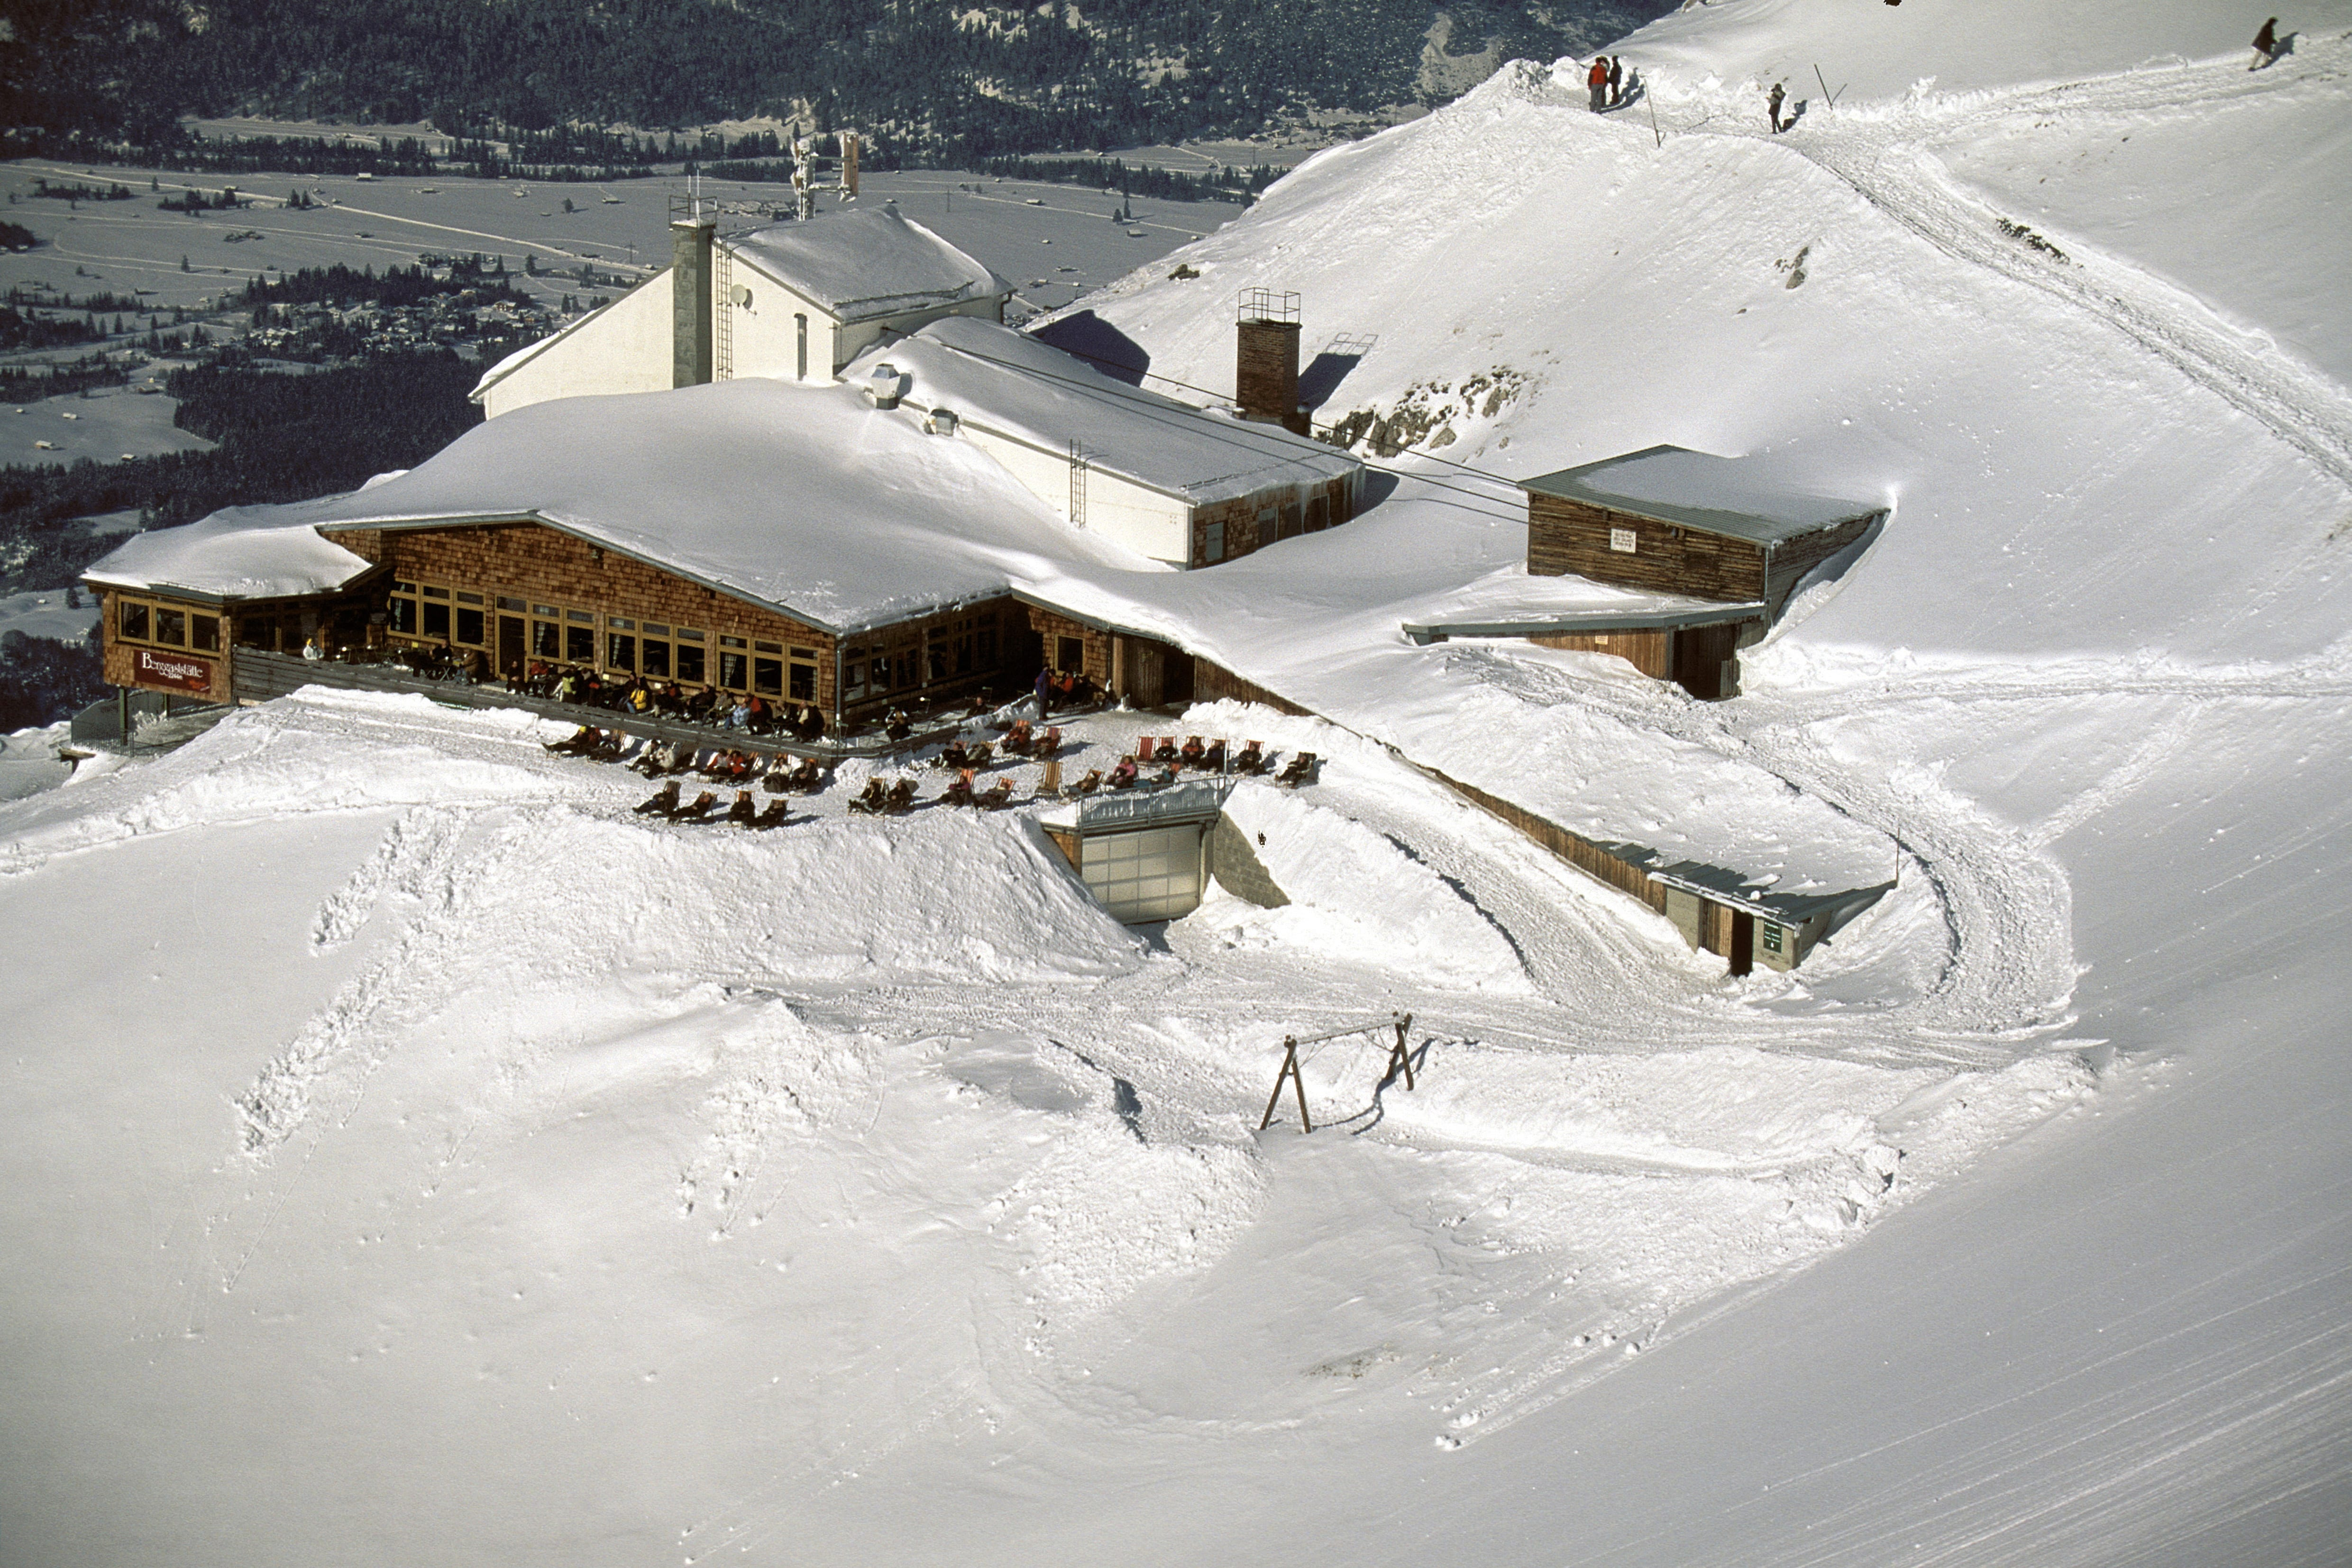 Snowy Karwendel cable car mountain station (00008110)